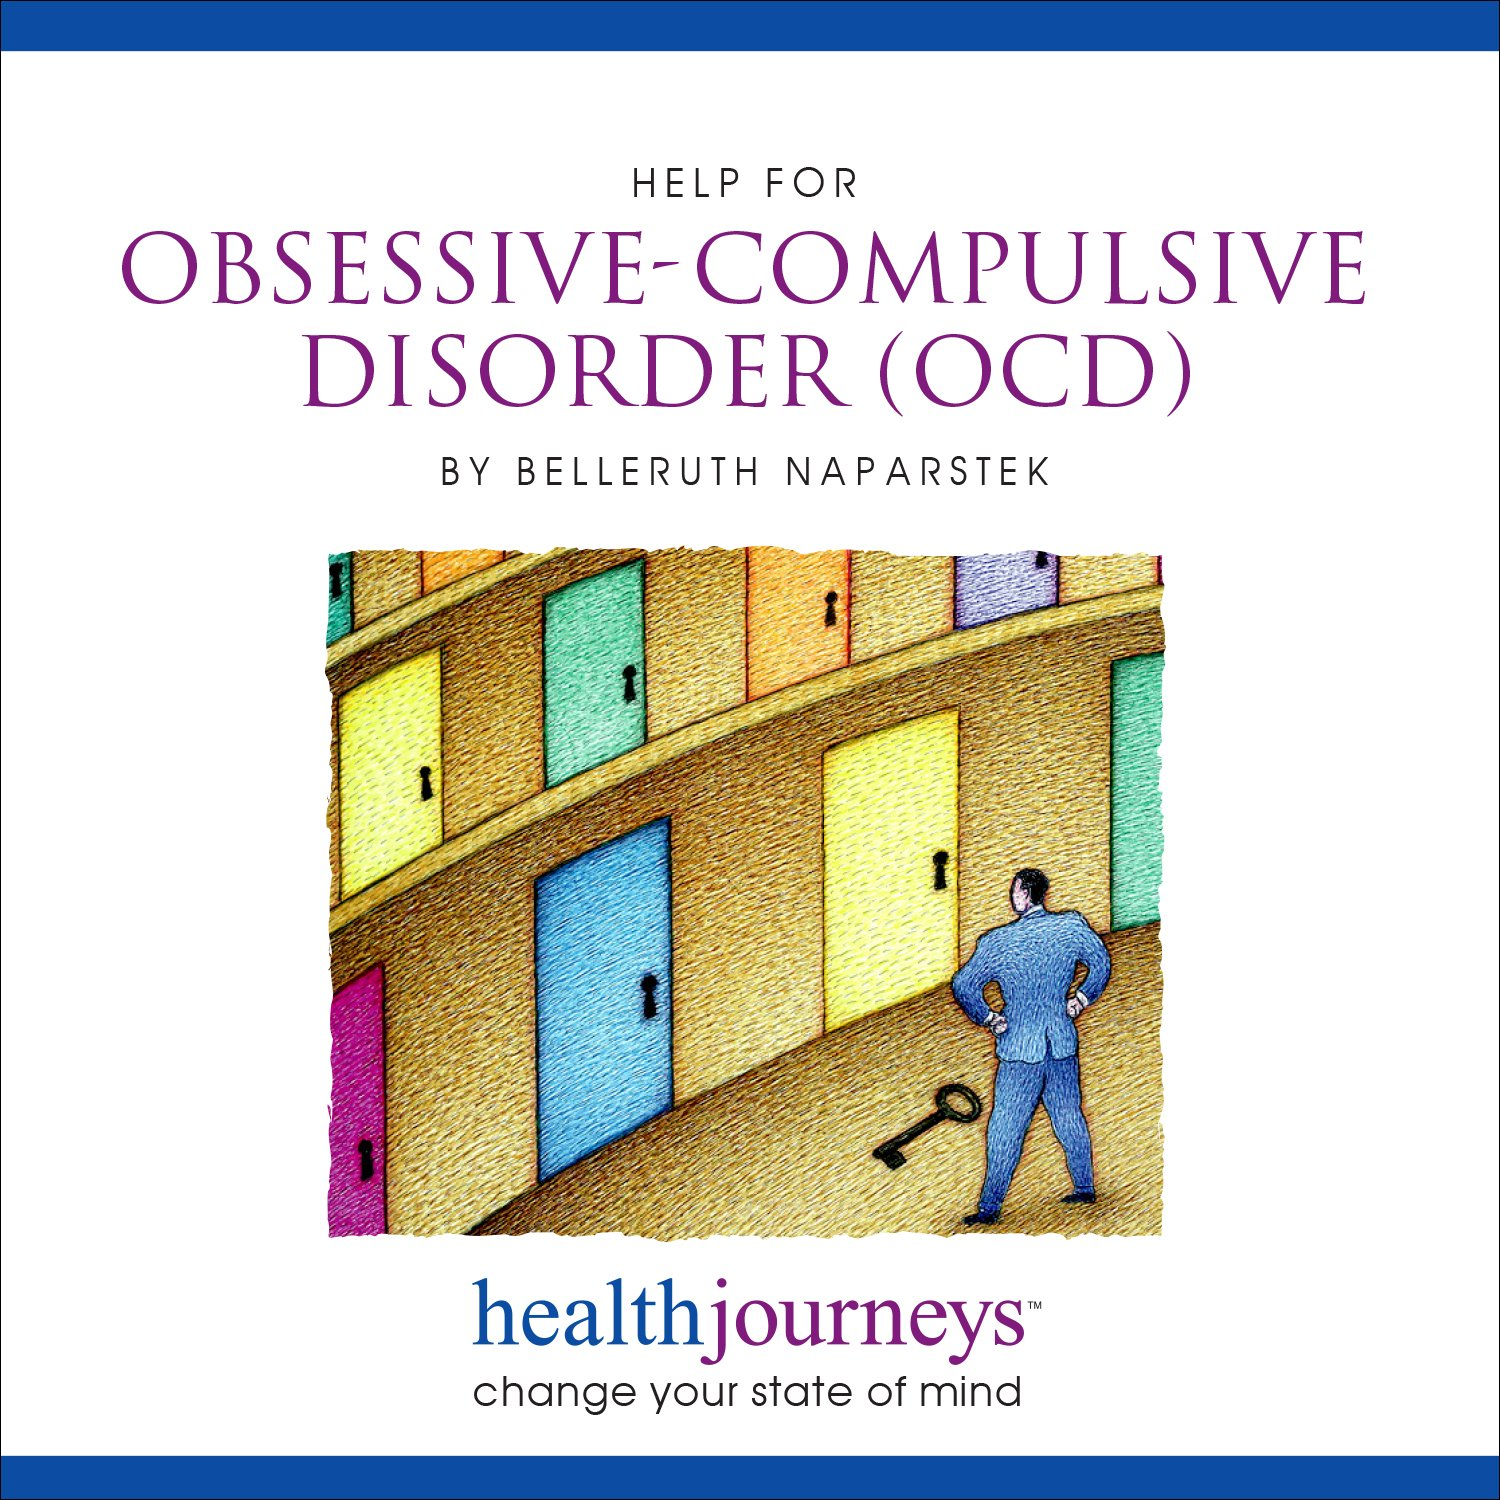 Meditations for Help with Obsessive-Compulsive Disorder, Anxiety, Biochemical Swings, Increase Strength, Motivation to Resist Unwanted Thoughts and Impulses with Soothing Music by Belleruth Naparstek